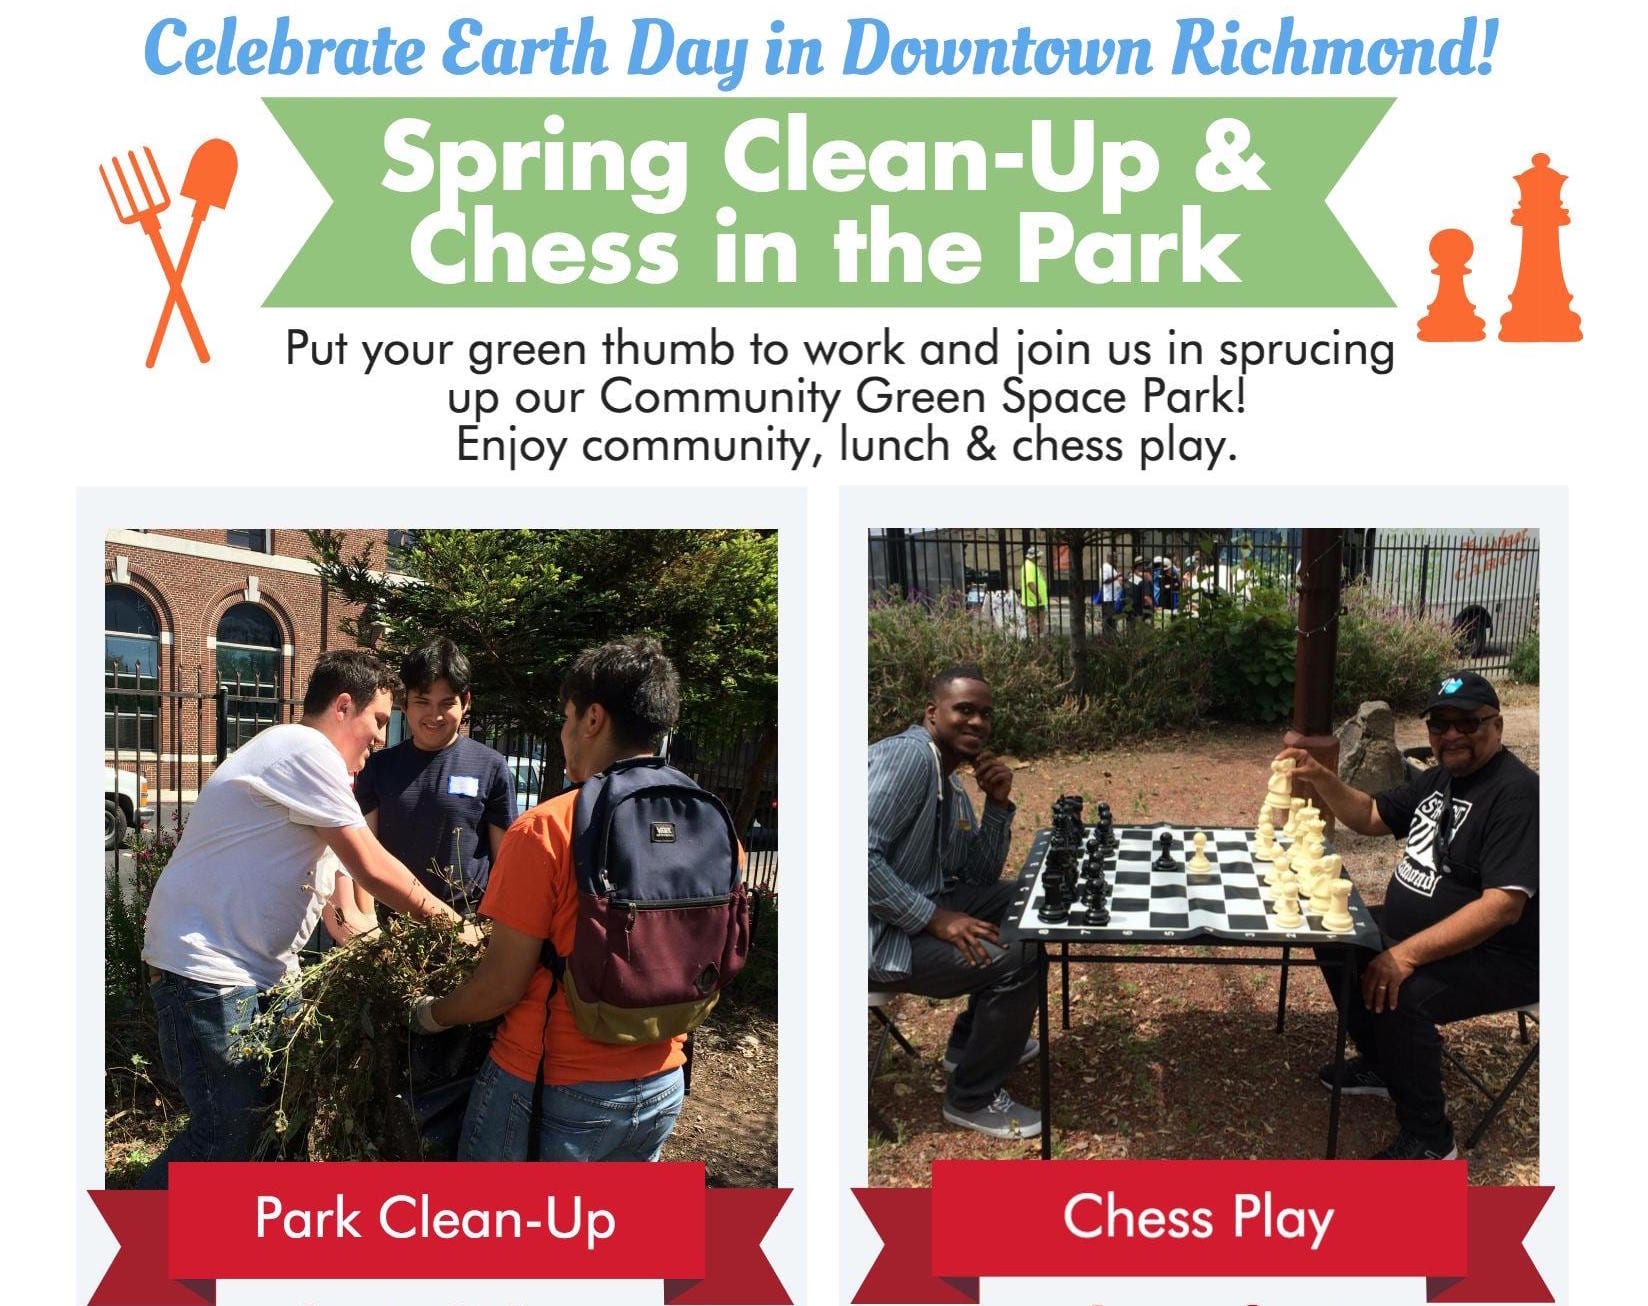 New Collaborative Group to Host First Event in Downtown Richmond to Celebrate Earth Day & Play Chess